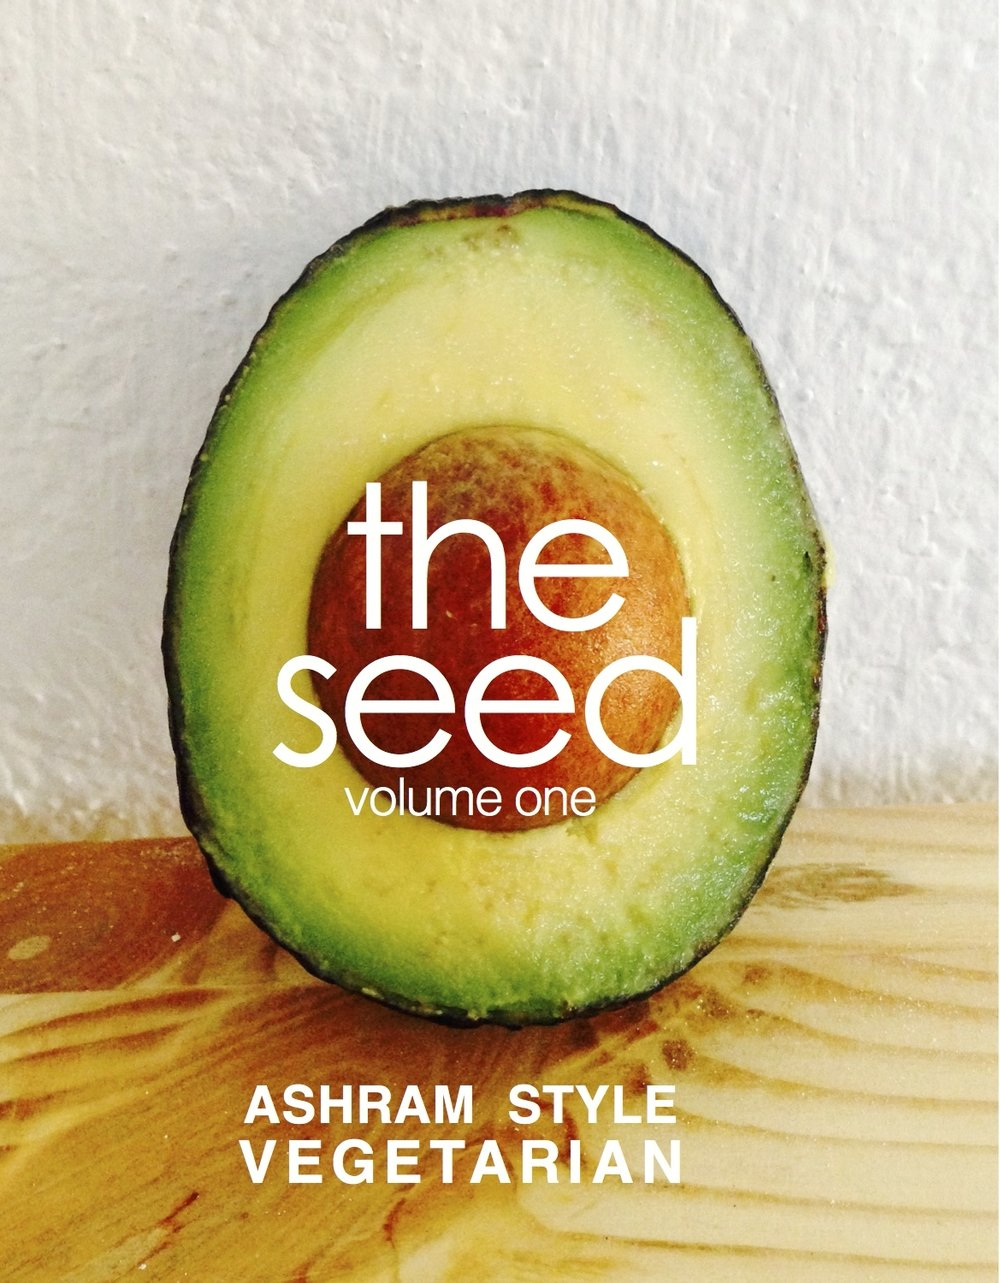 THE SEED_FRONT AND BACK COVER.jpg